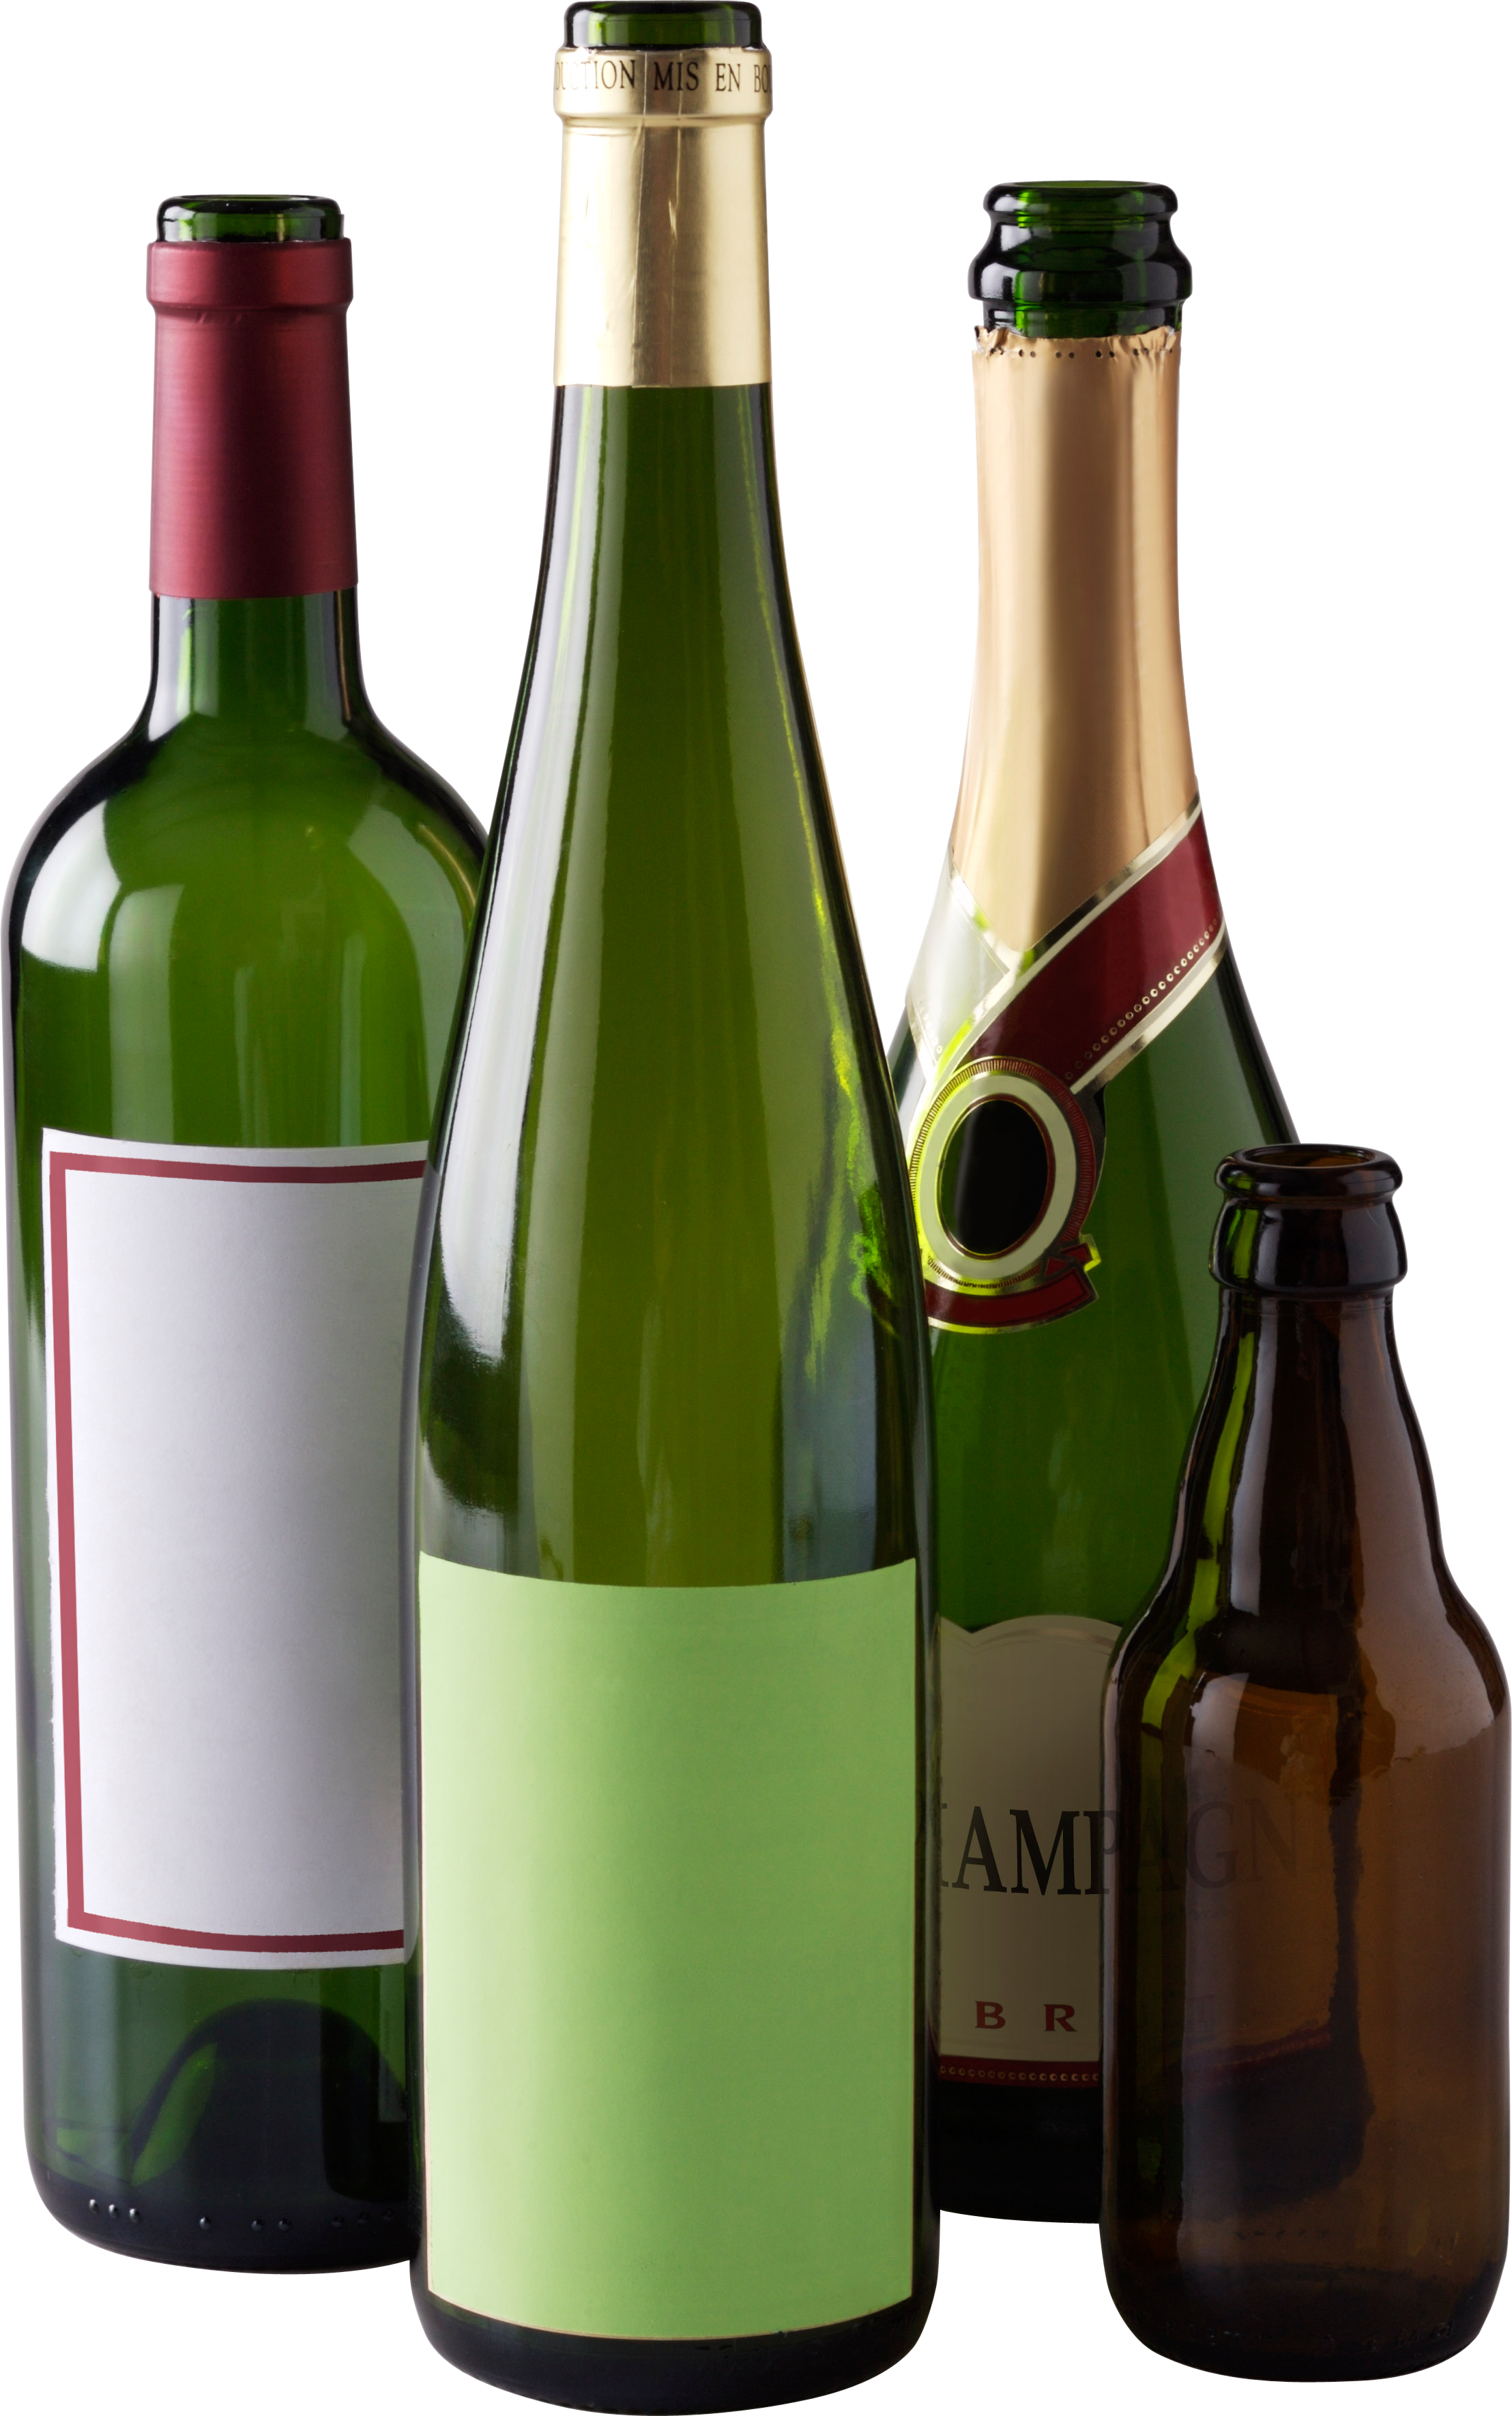 Alcohol bottle png. Images free download bottles